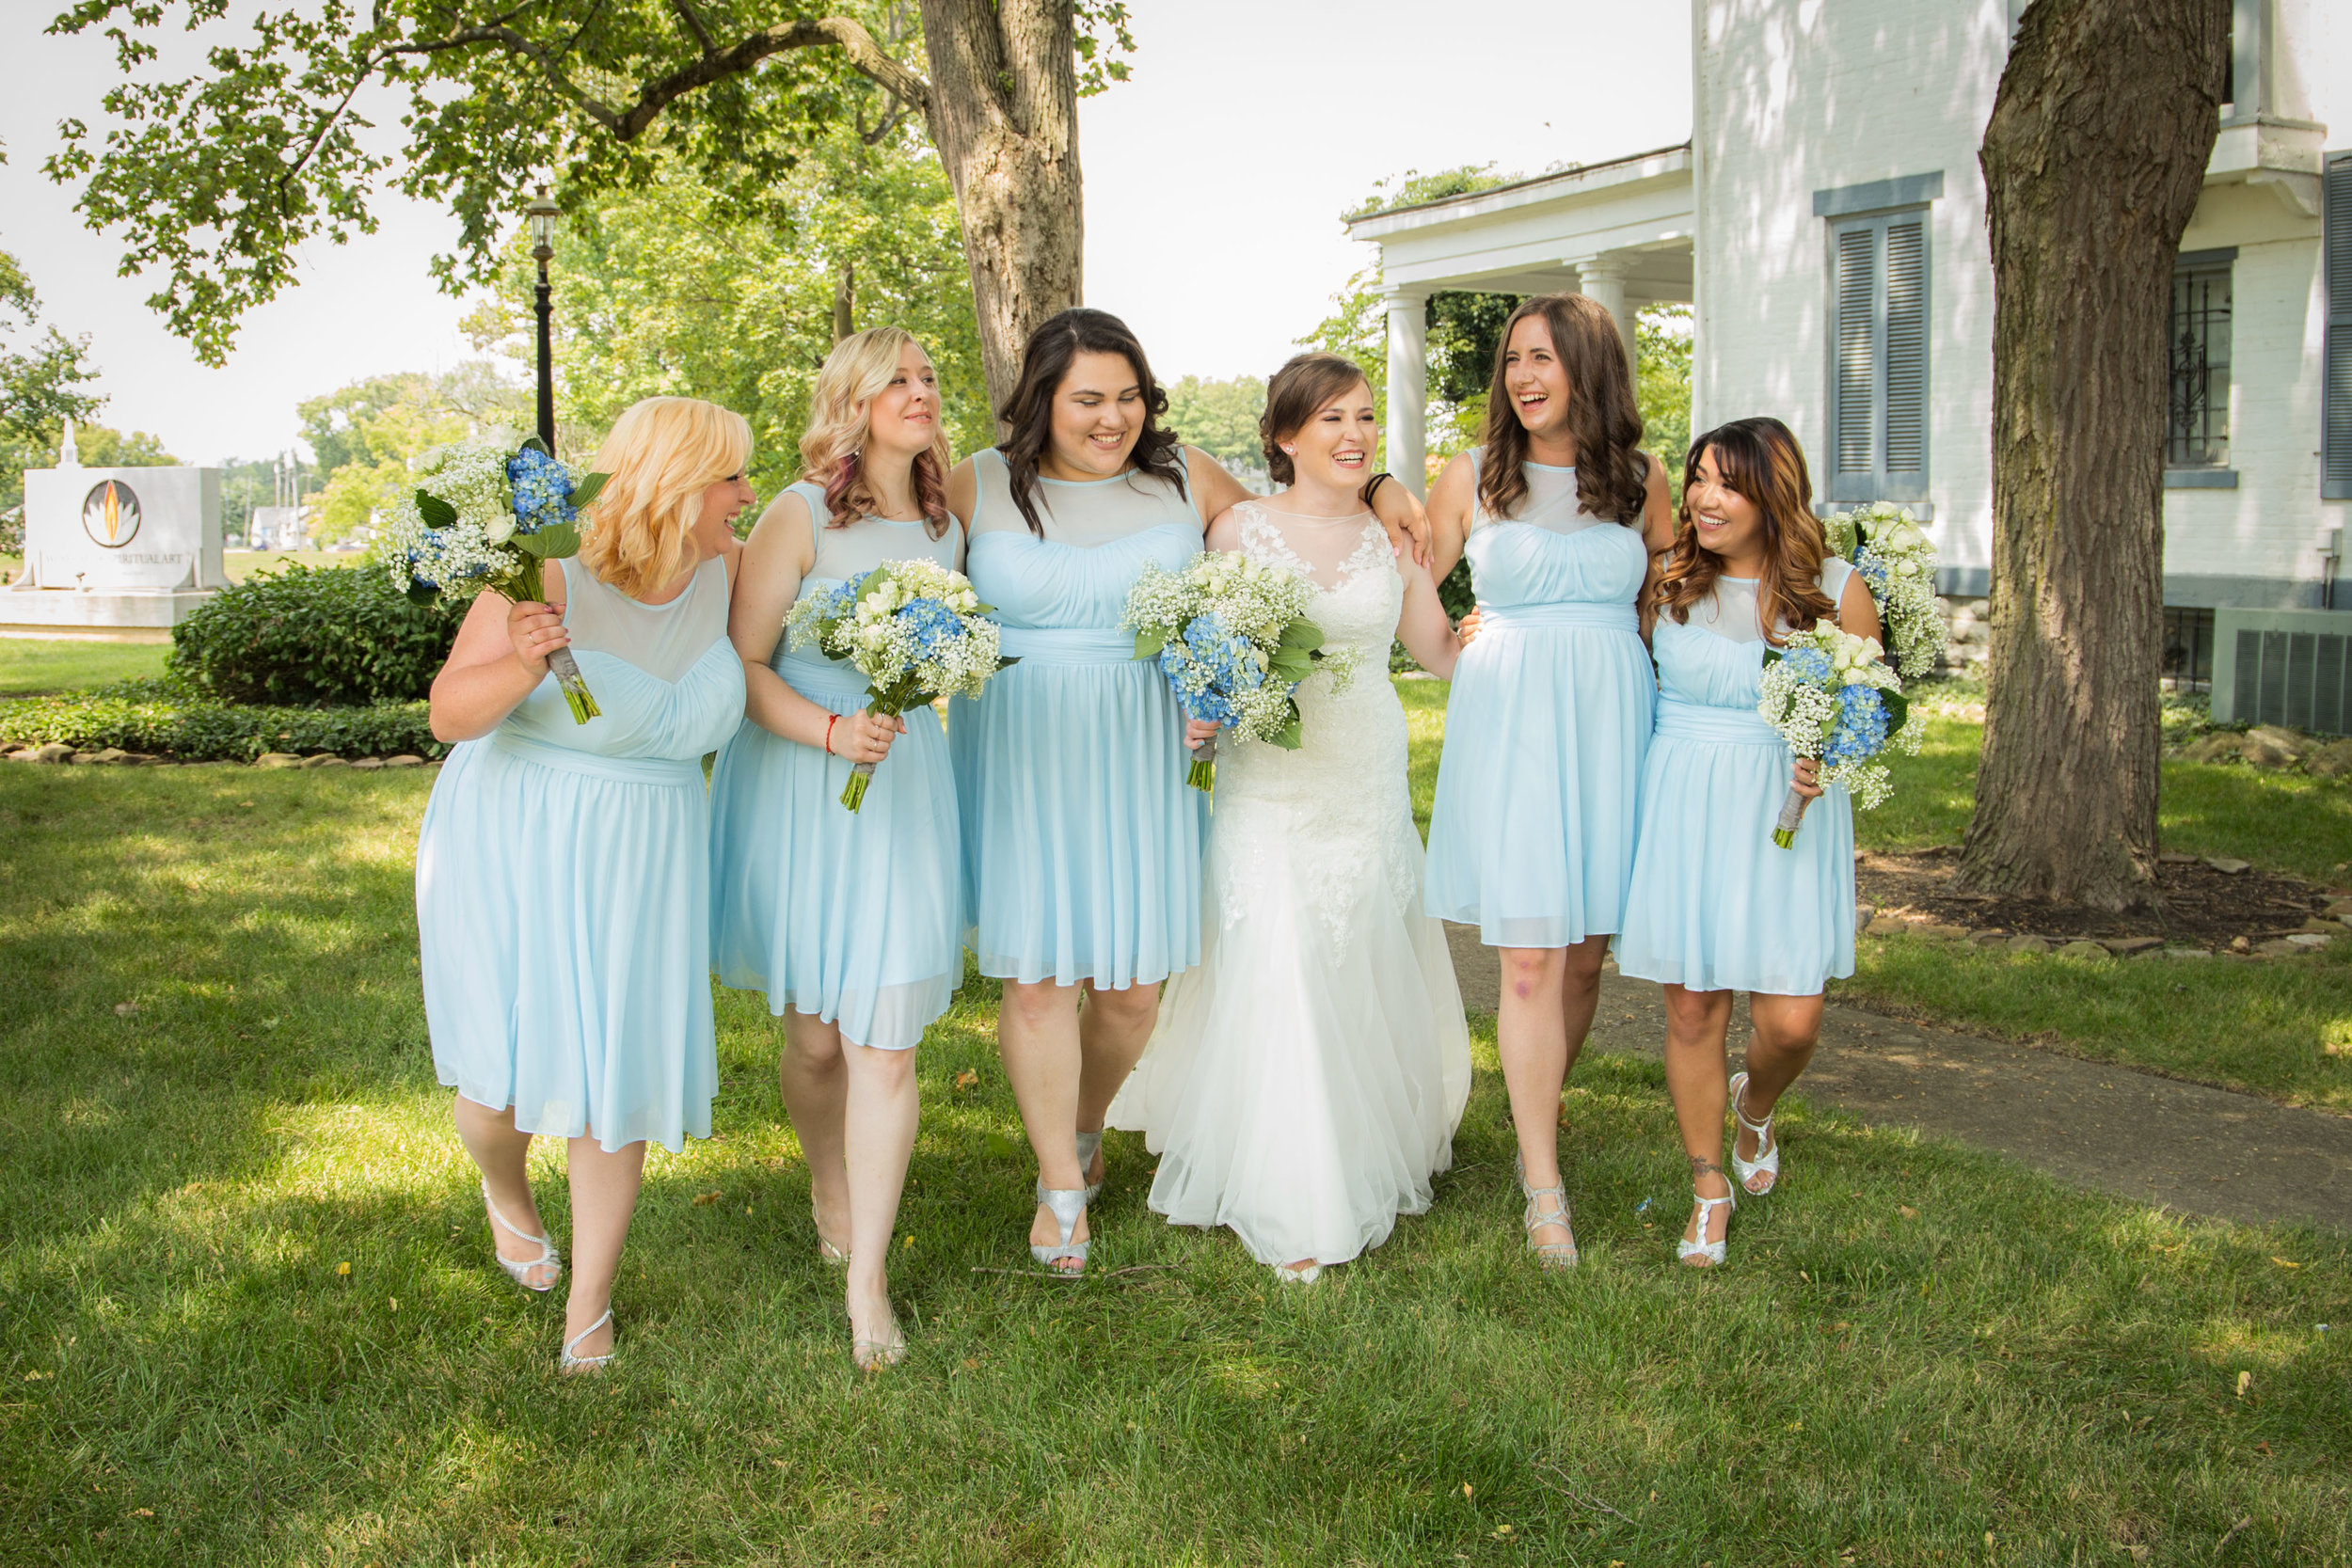 The bride and her gorgeous bridesmaids.